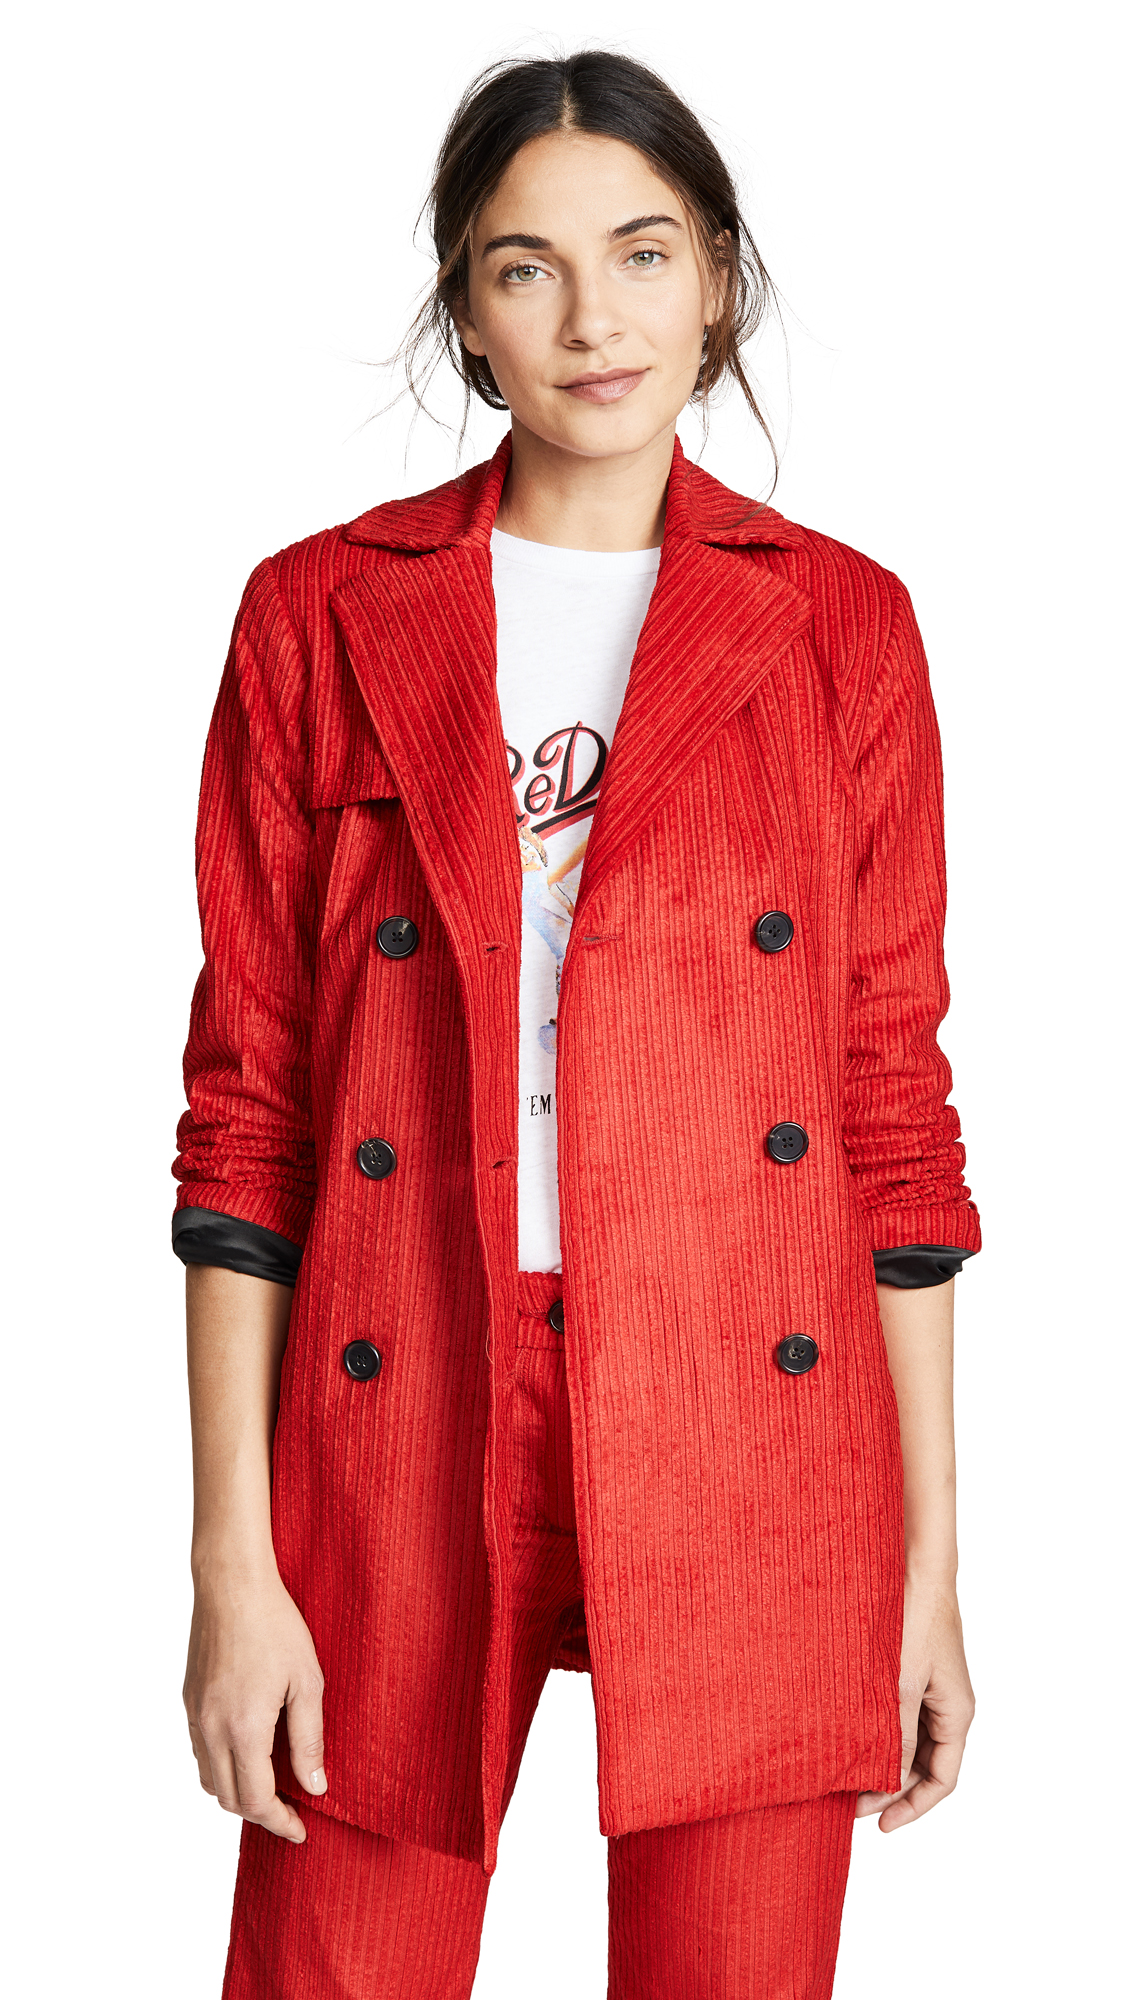 ei8htdreams Corduroy Double Breasted Coat In Red